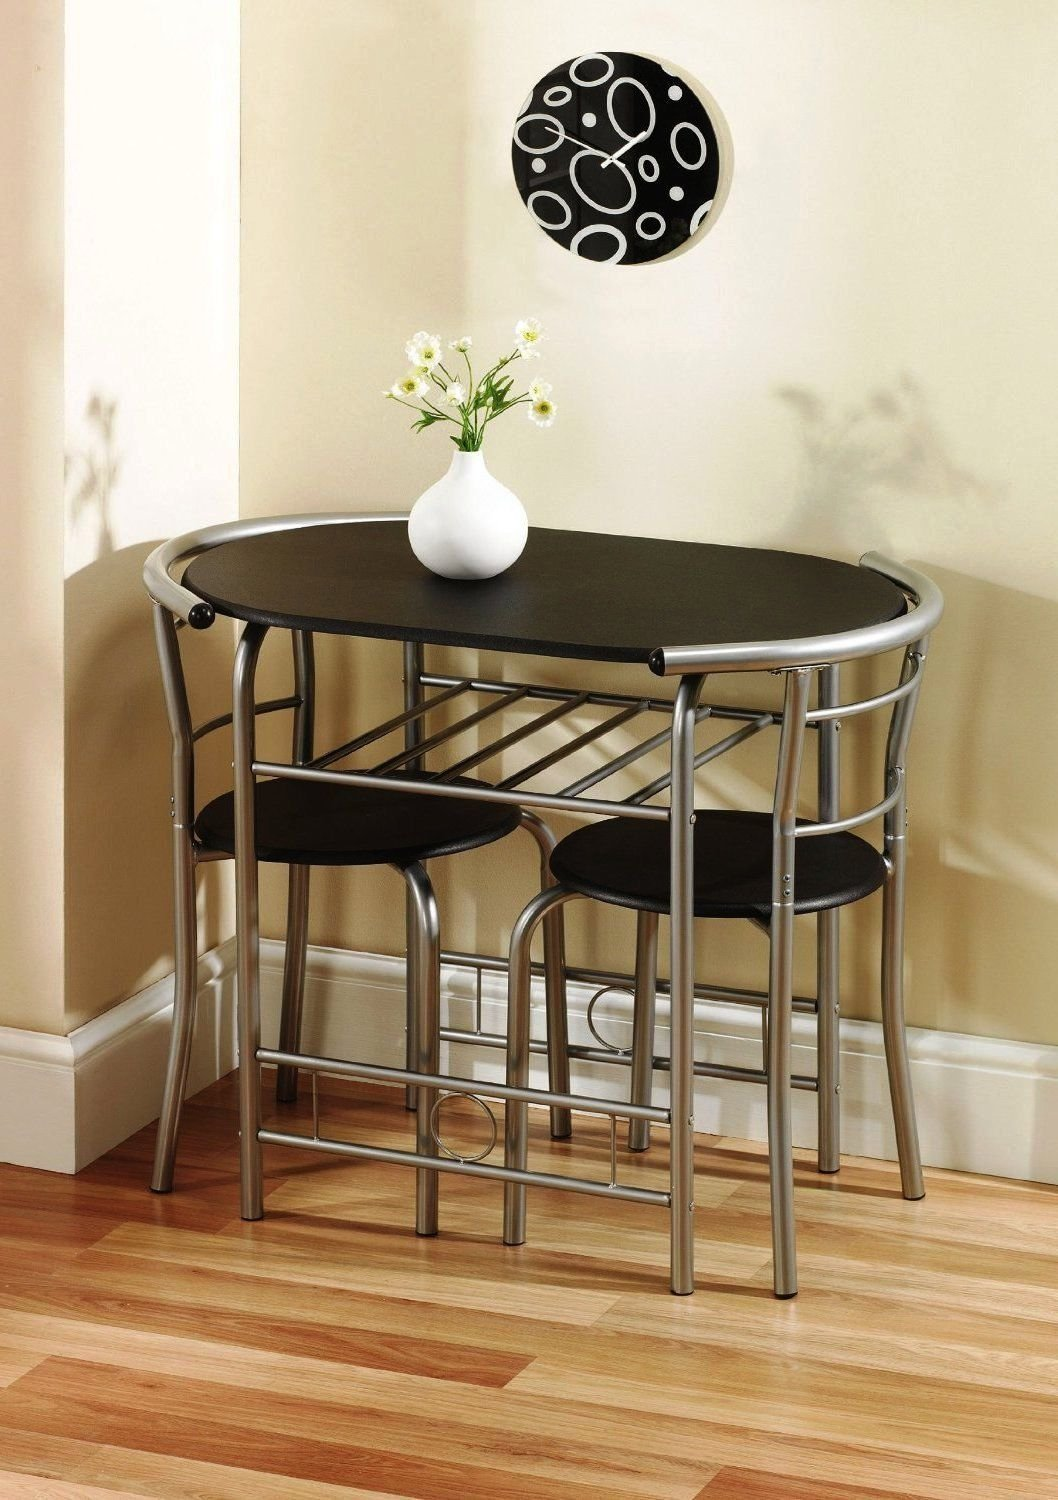 dining table sets. Amazon.com - Krasavic 3 Piece Kitchen Dining Table Set For 2 With Stack Chairs, Wood Top Metal Finish, Black/Silver \u0026 Chair Sets E